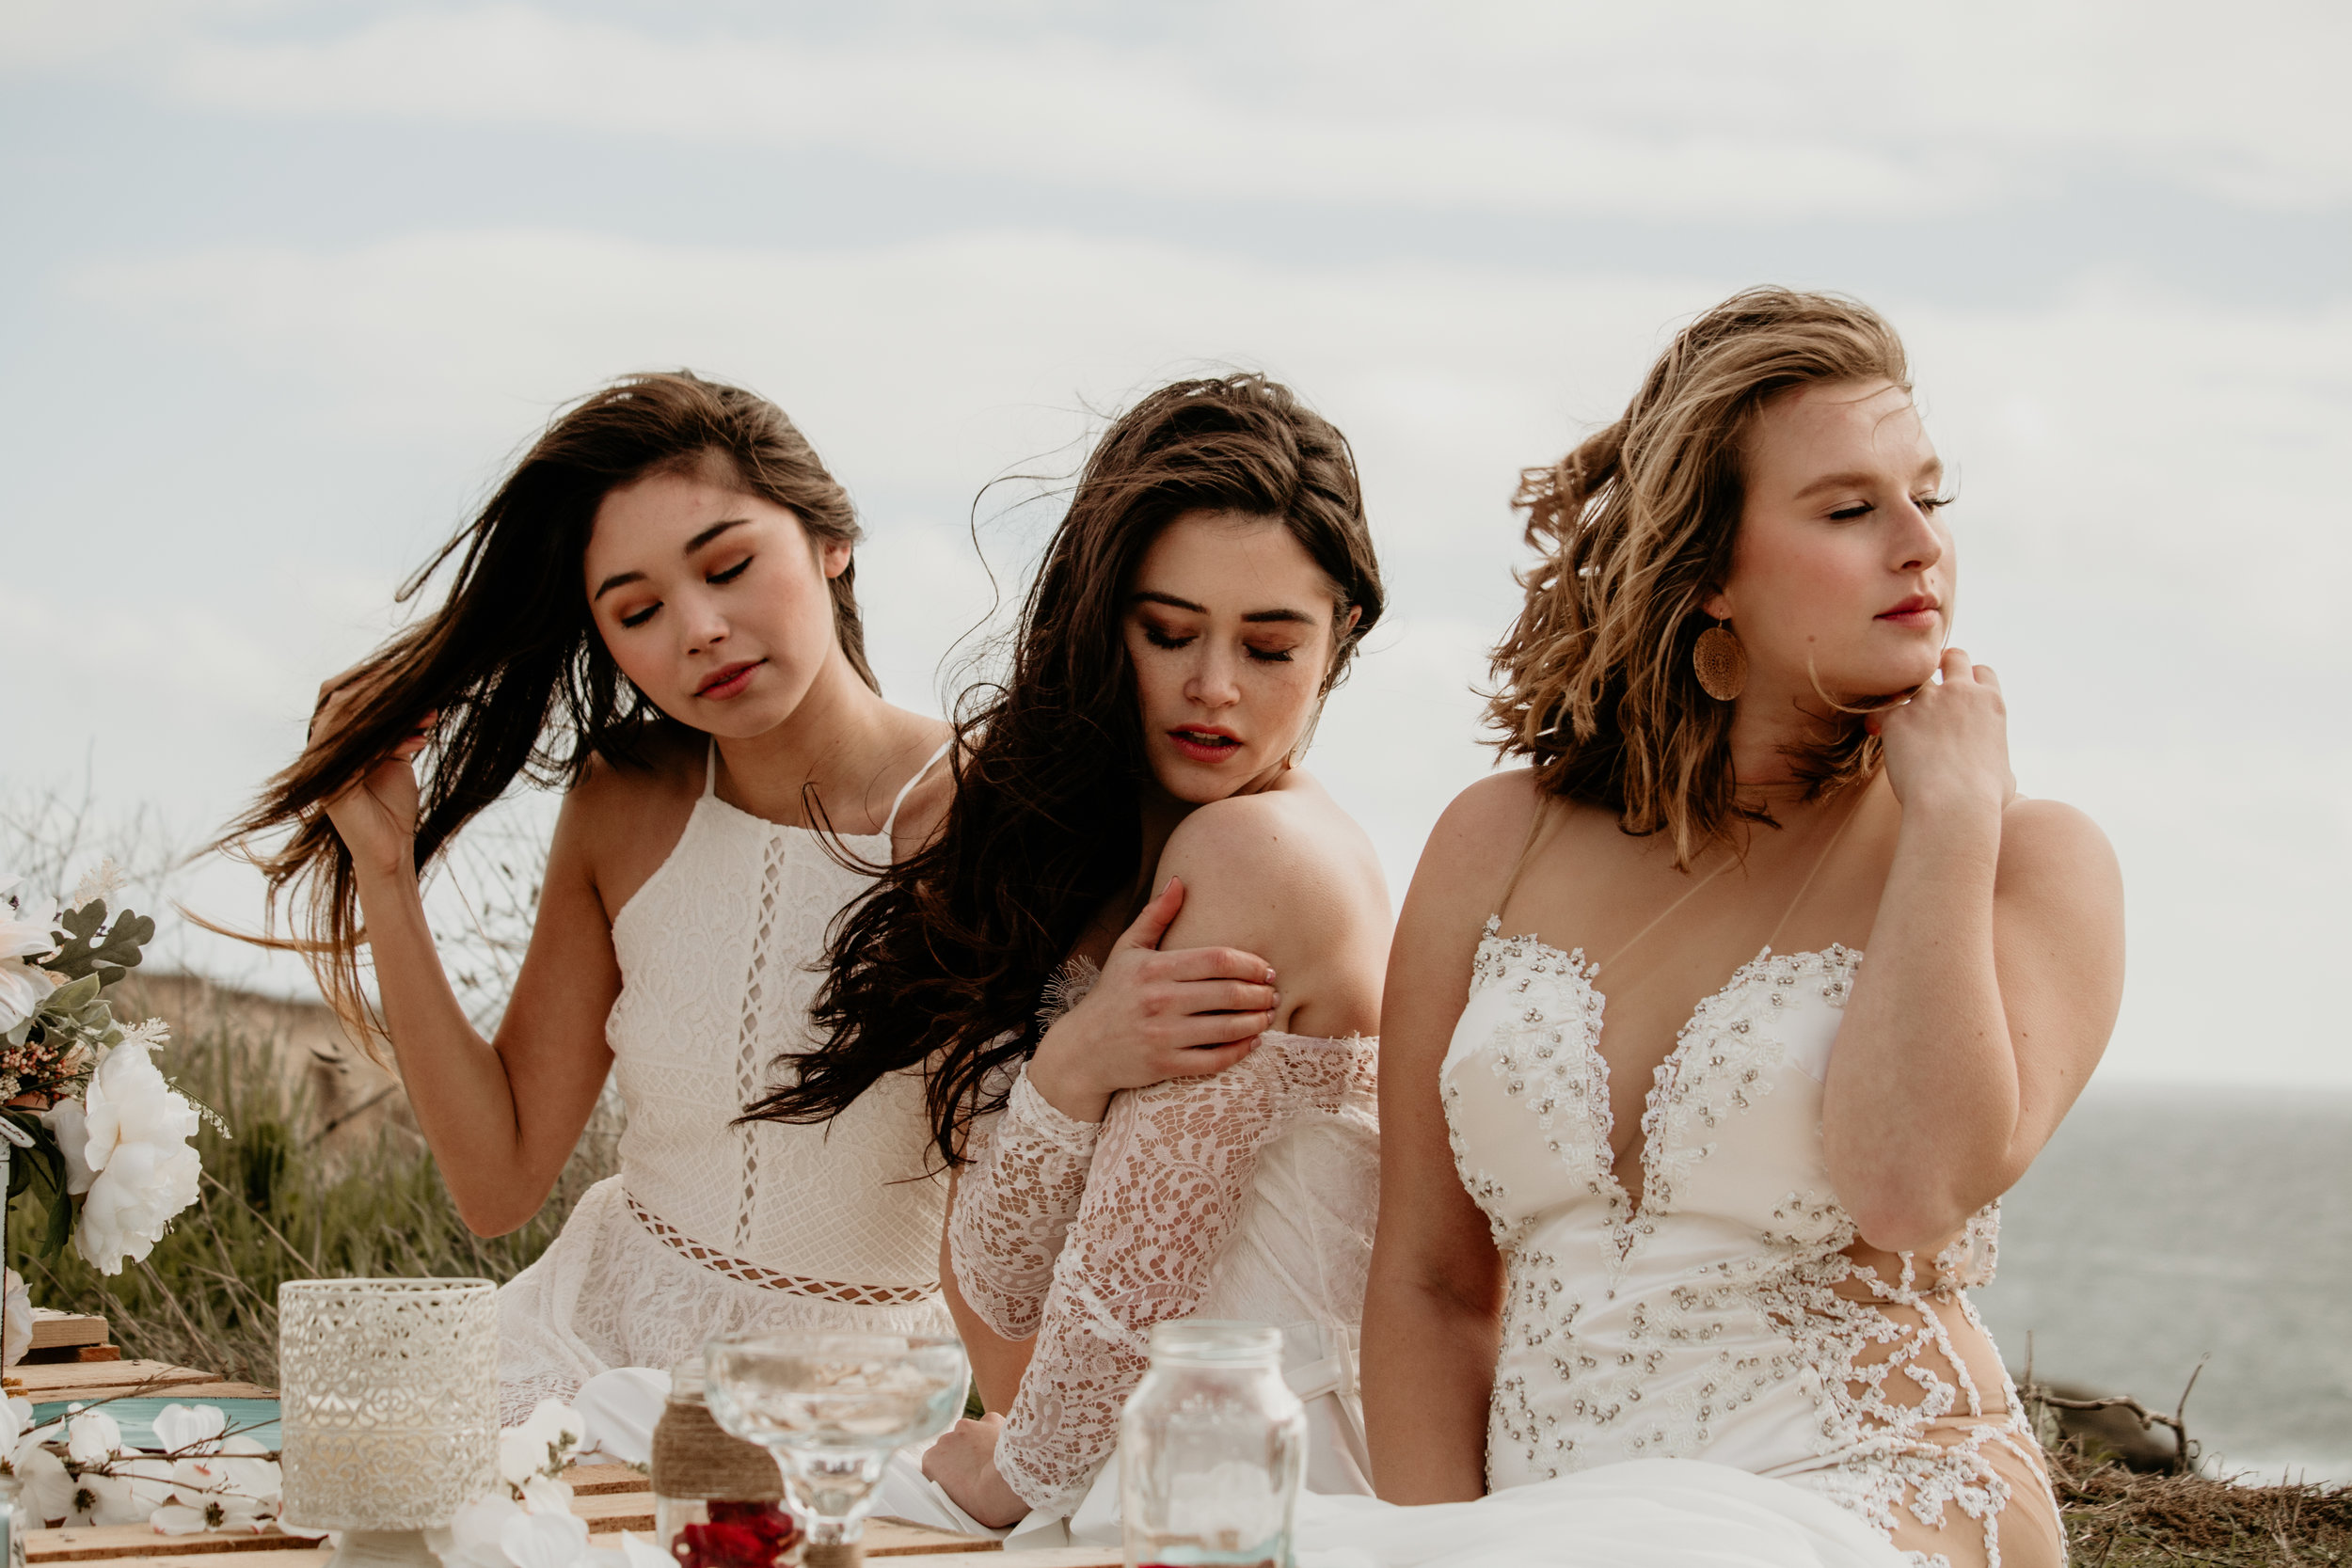 kim baker beauty luxury bridal and lifestyle makeup artist catie bell photo panther beach san jose and greater bay area california